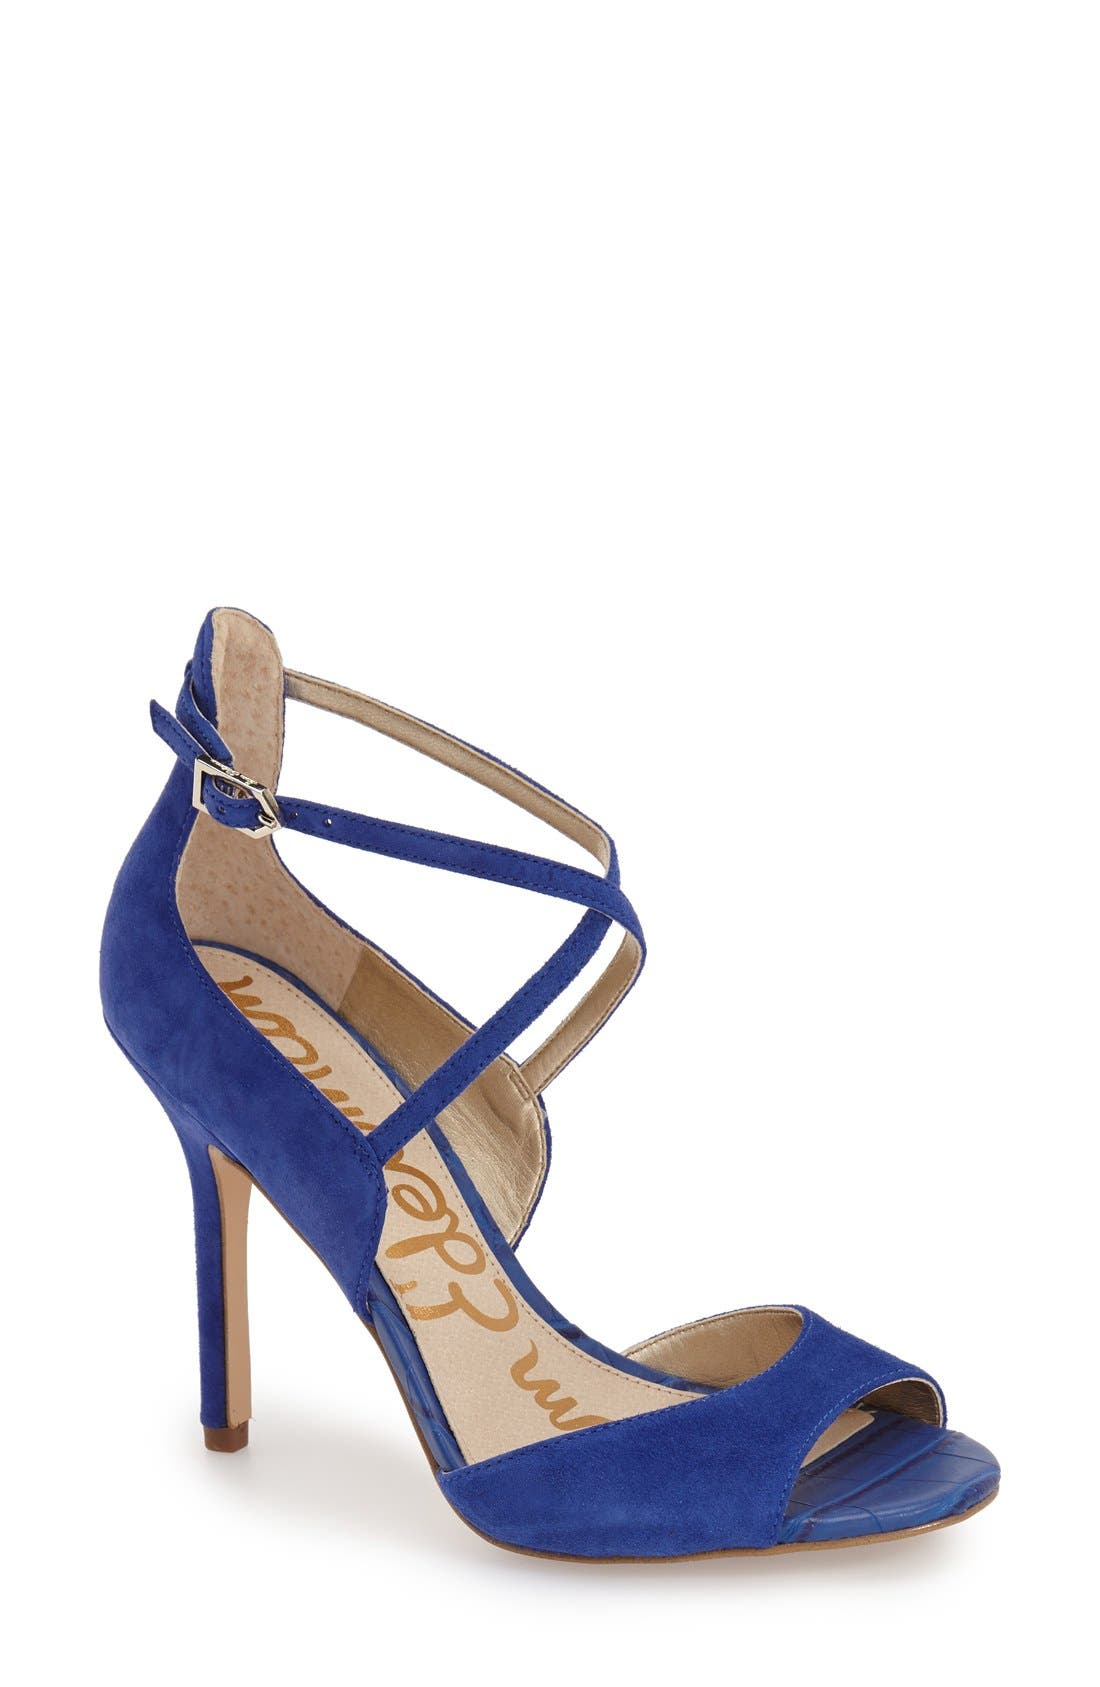 Alternate Image 1 Selected - Sam Edelman 'Audrey' Sandal (Women)